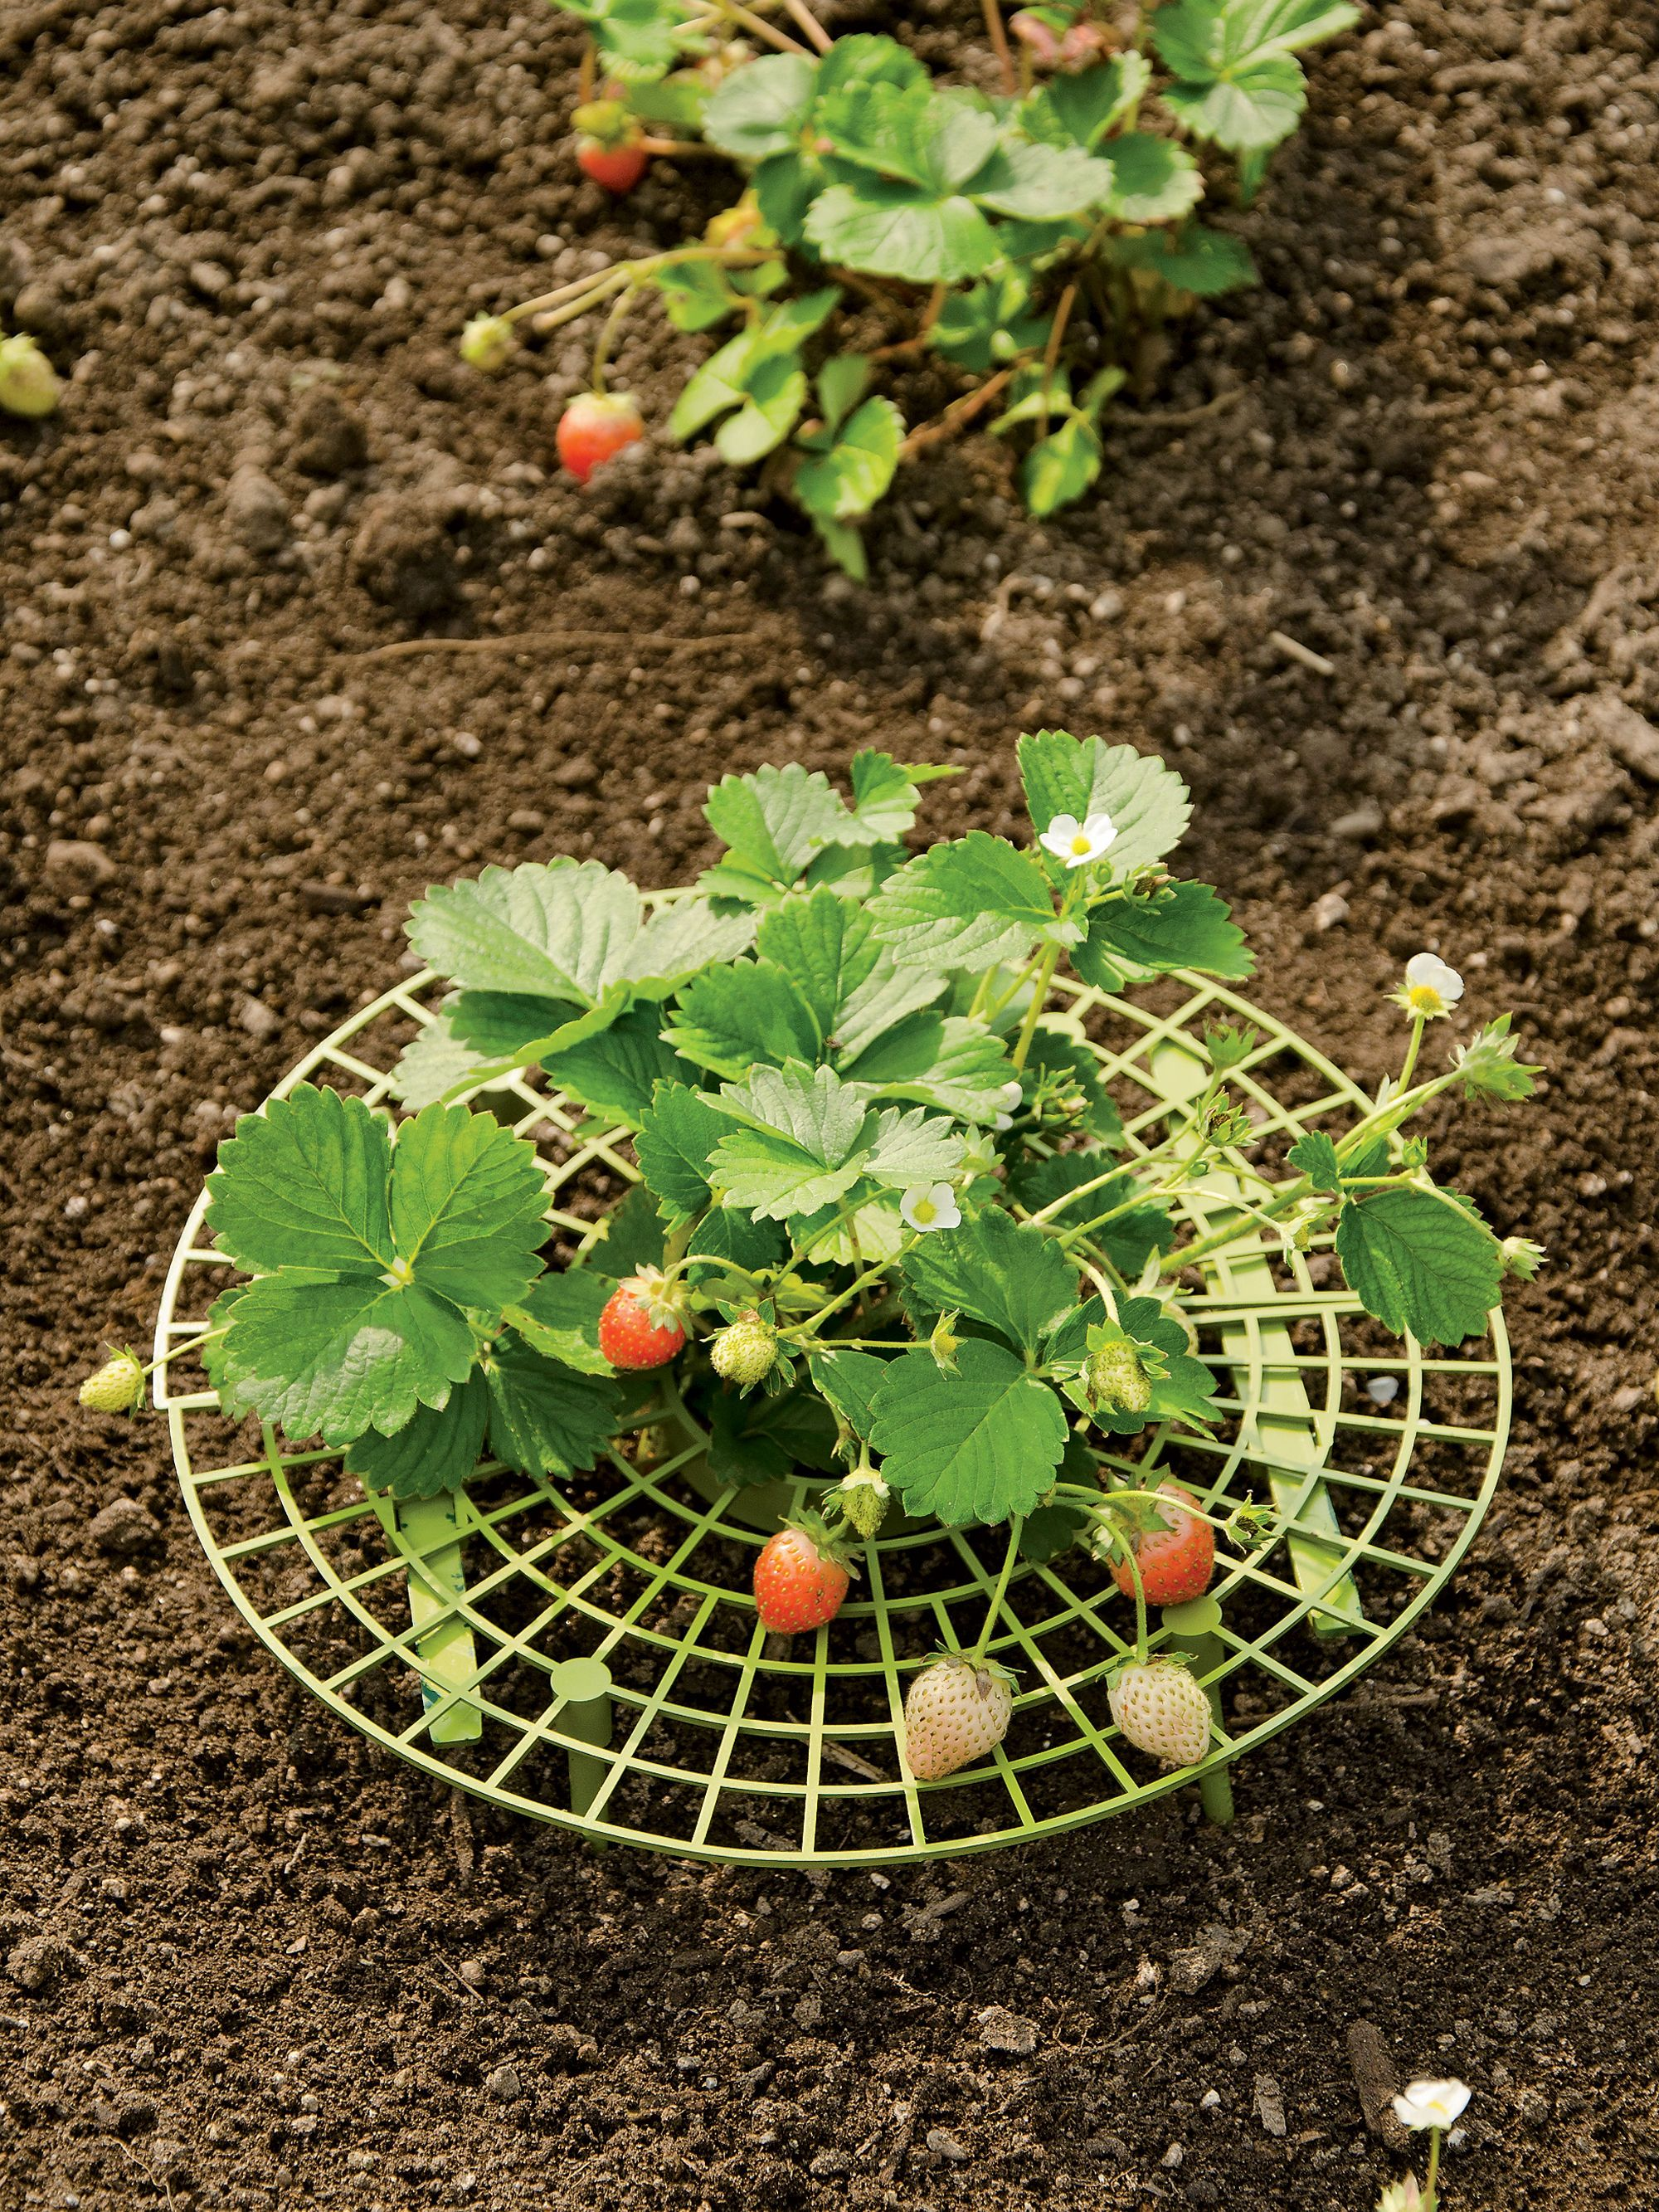 Strawberry Growing Frame for Strawberry Planting Keeping Fruit Elevated to Avoid Ground Rot Strawberry Plant Supports 6 Pcs